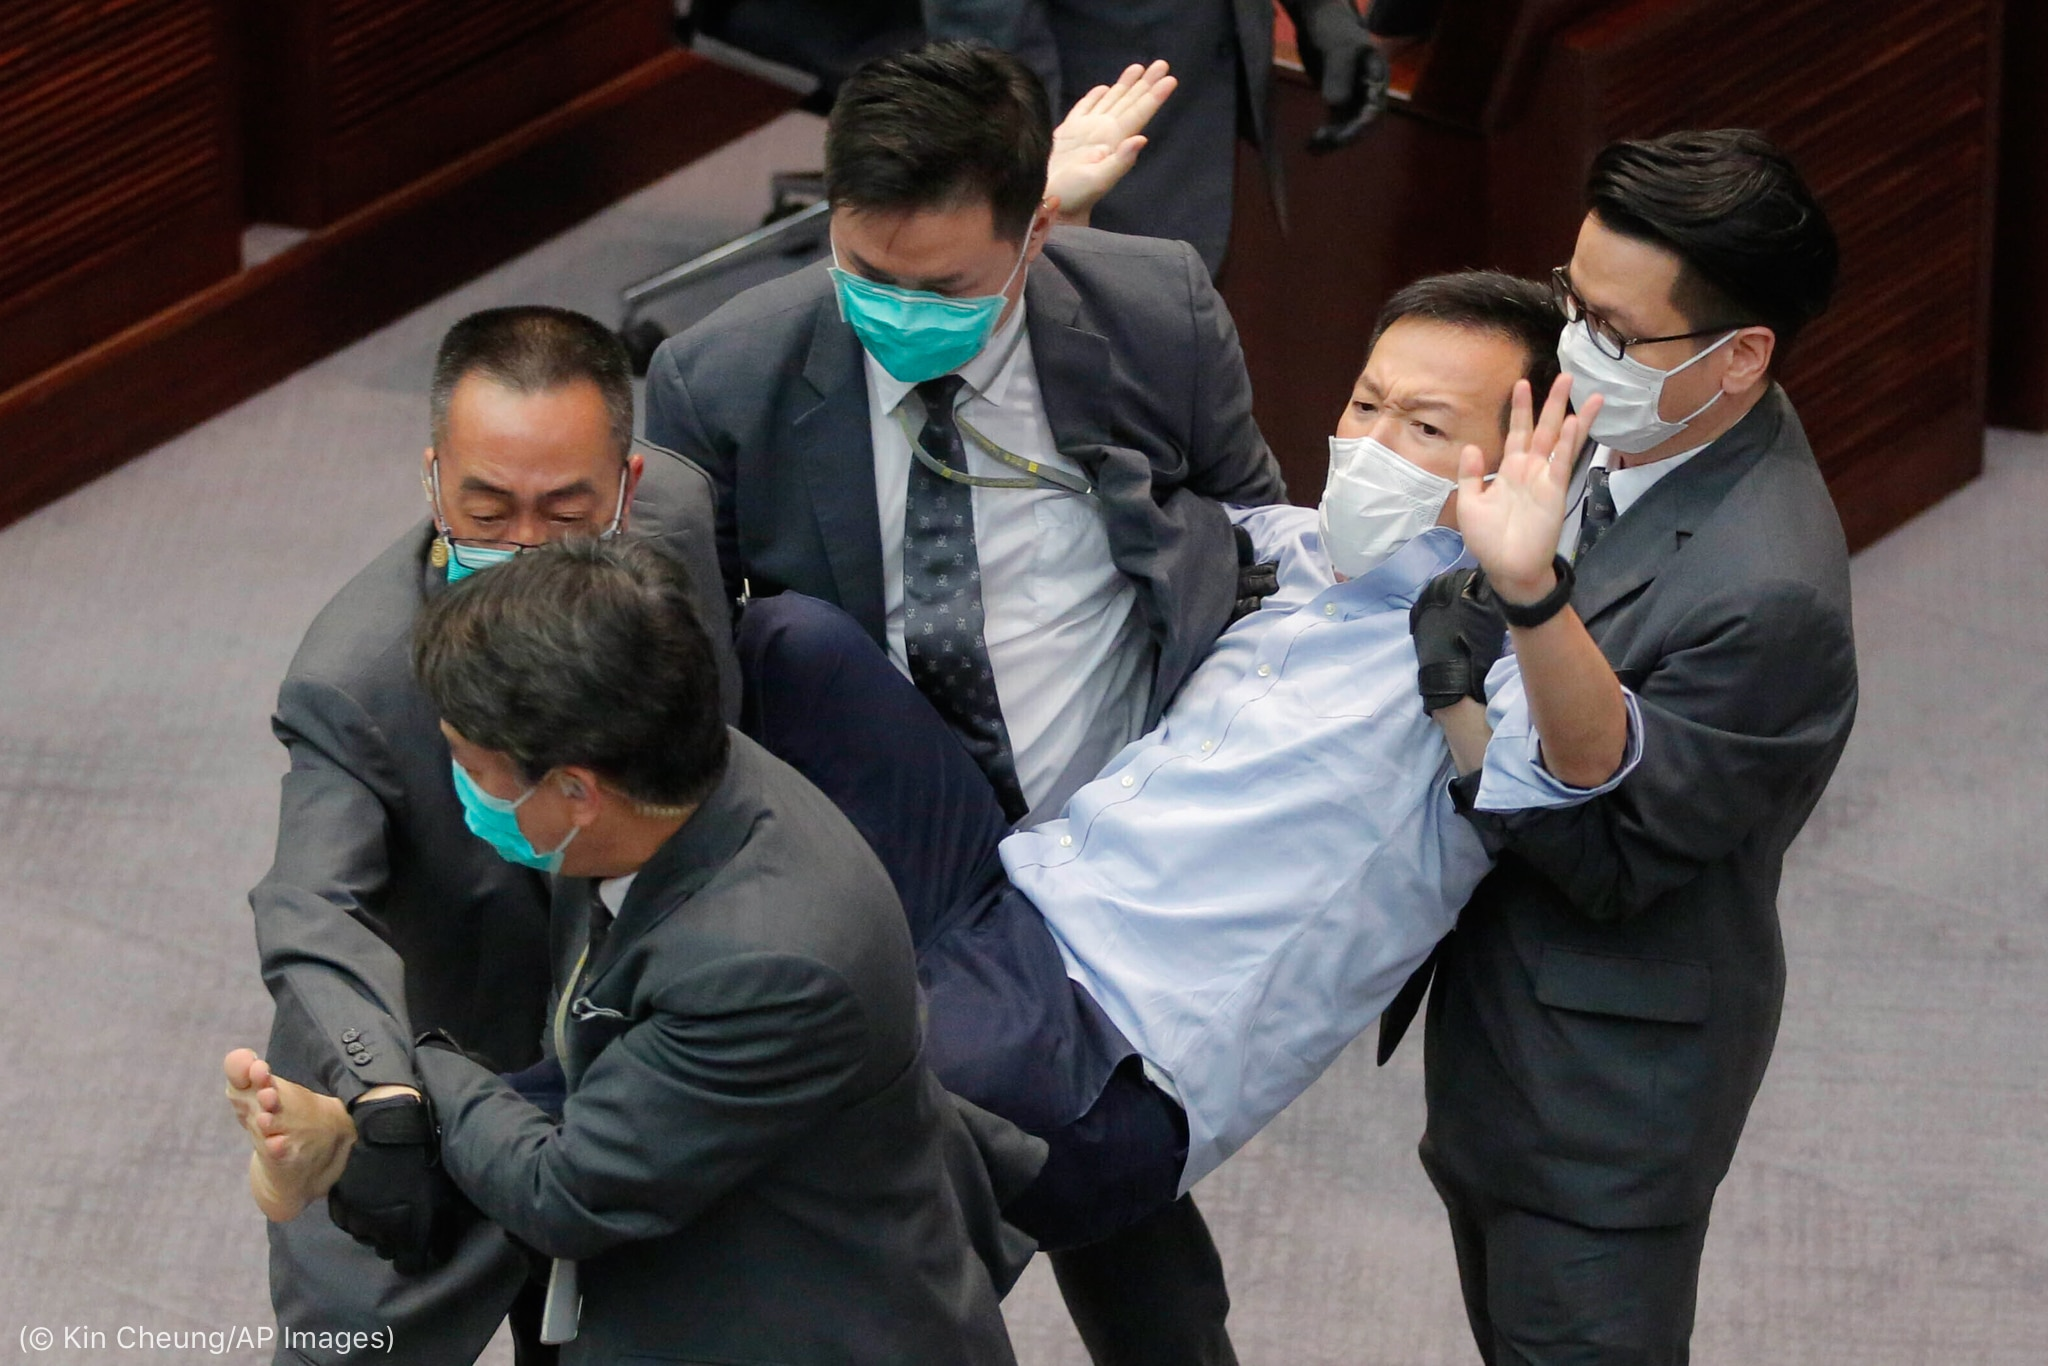 Four suited men carrying man (© Kin Cheung/AP Images)